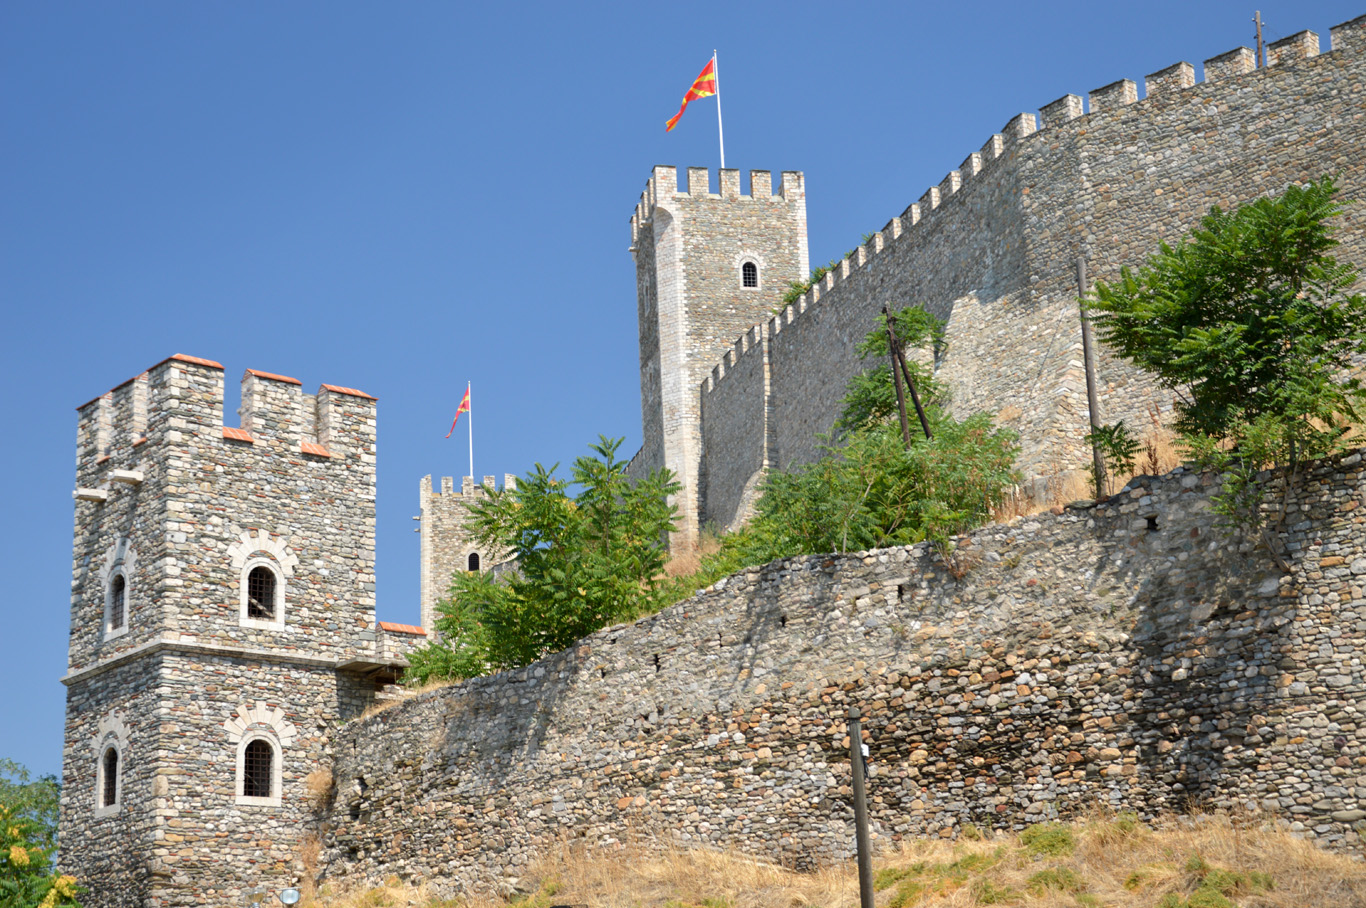 Kale Fortress - reminder of the Byzantine times